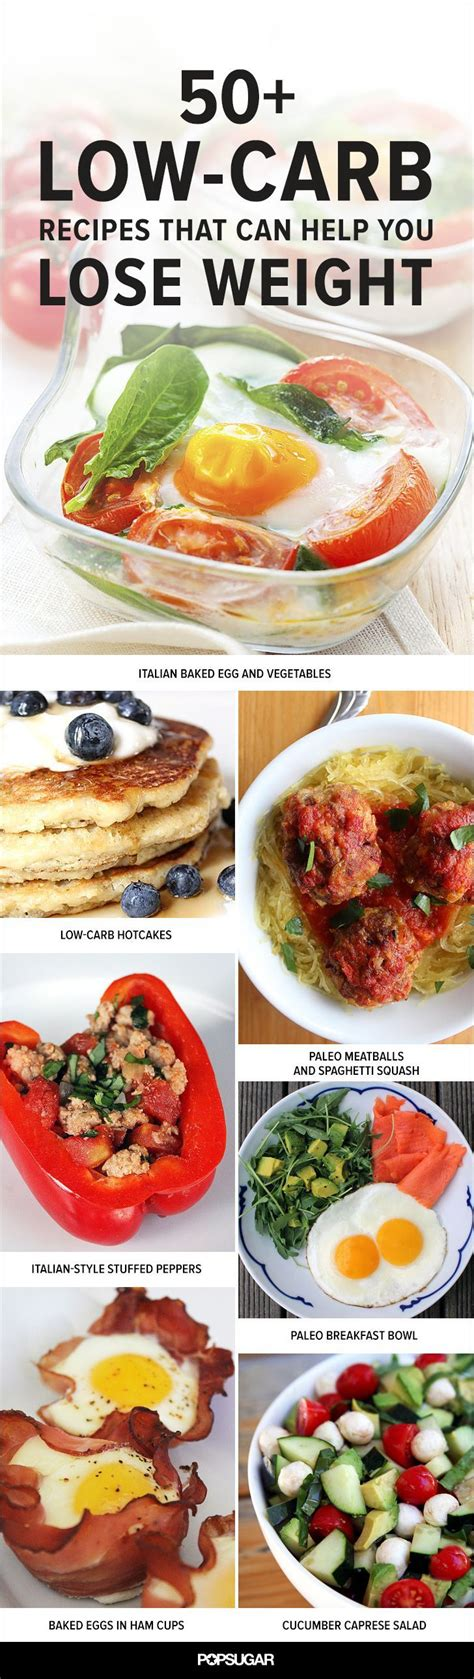 healthy fats with zero carbs high protein low carb foods list foodfash co